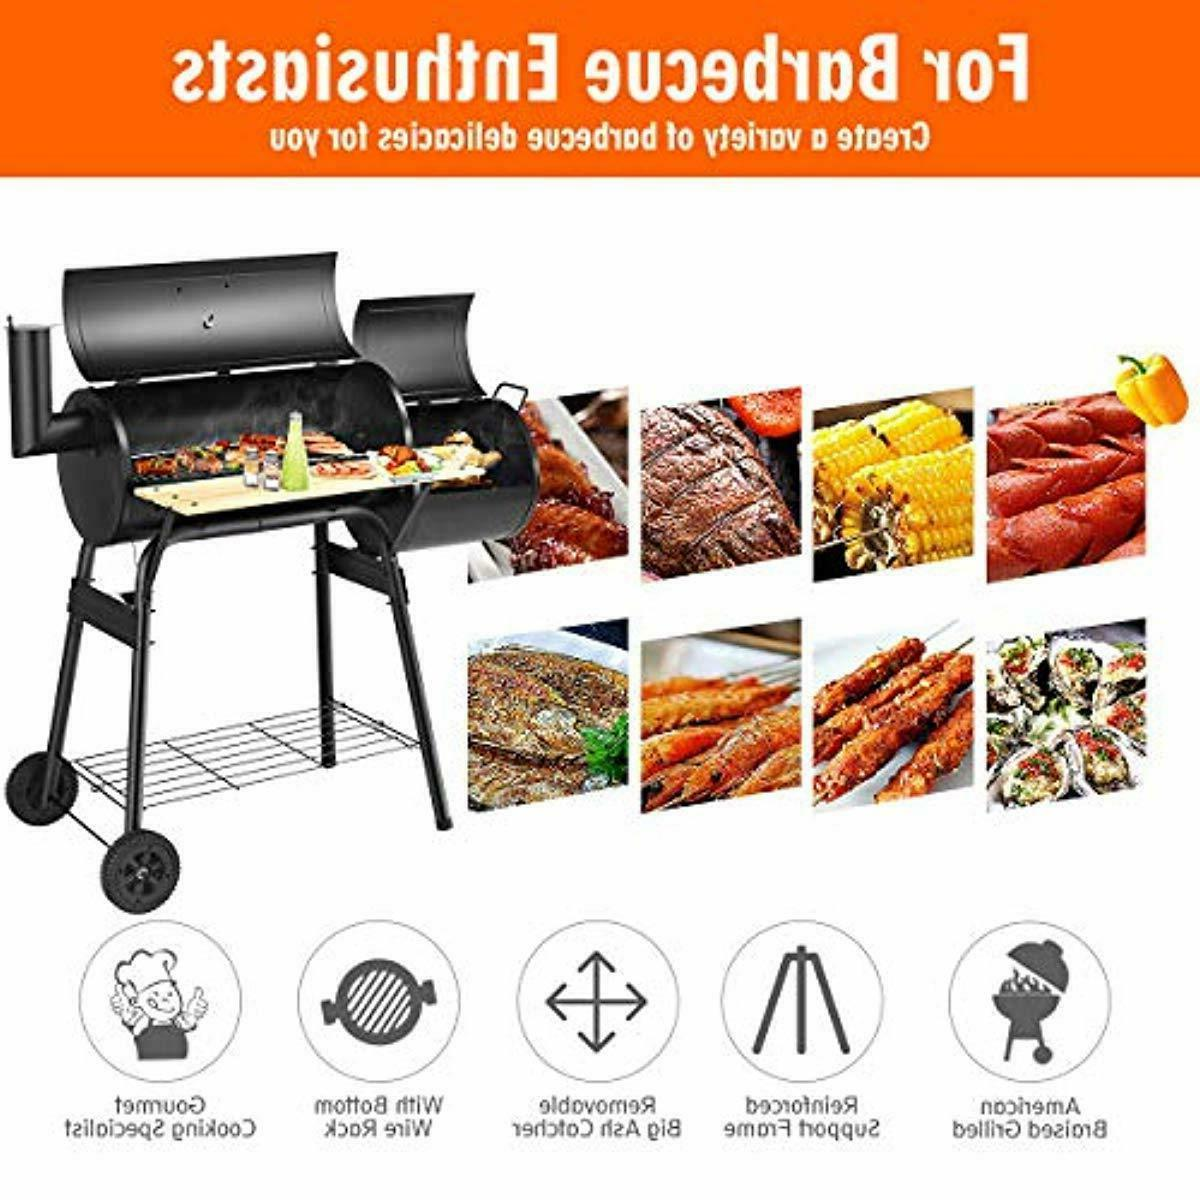 Giantex BBQ Grill Barbecue Grill Patio C